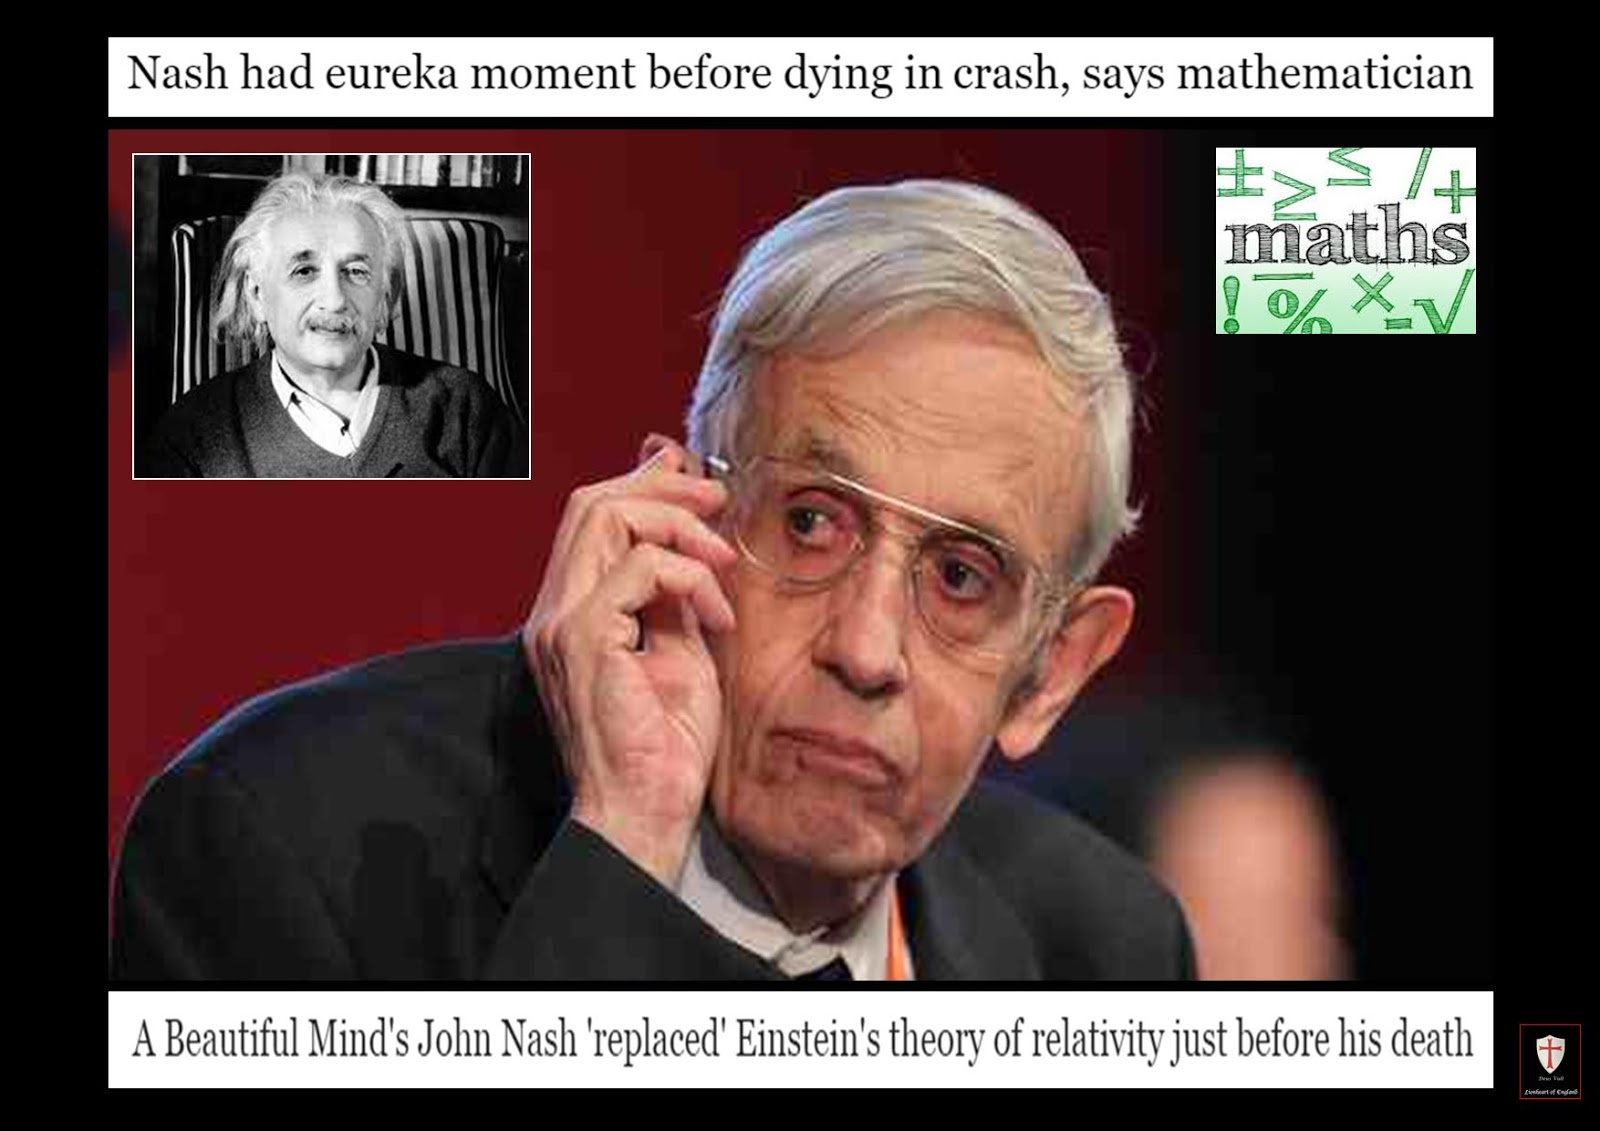 john nash dissertation game theory Game theory was the subject of nash's doctoral dissertation at princeton university expanding upon the initial game theory of john von neumann and oskar morgenstern, published in their the theory of games and economic behavior, nash developed what became known as nash's equilibrium to explain how two or more competitors can arrive at a.